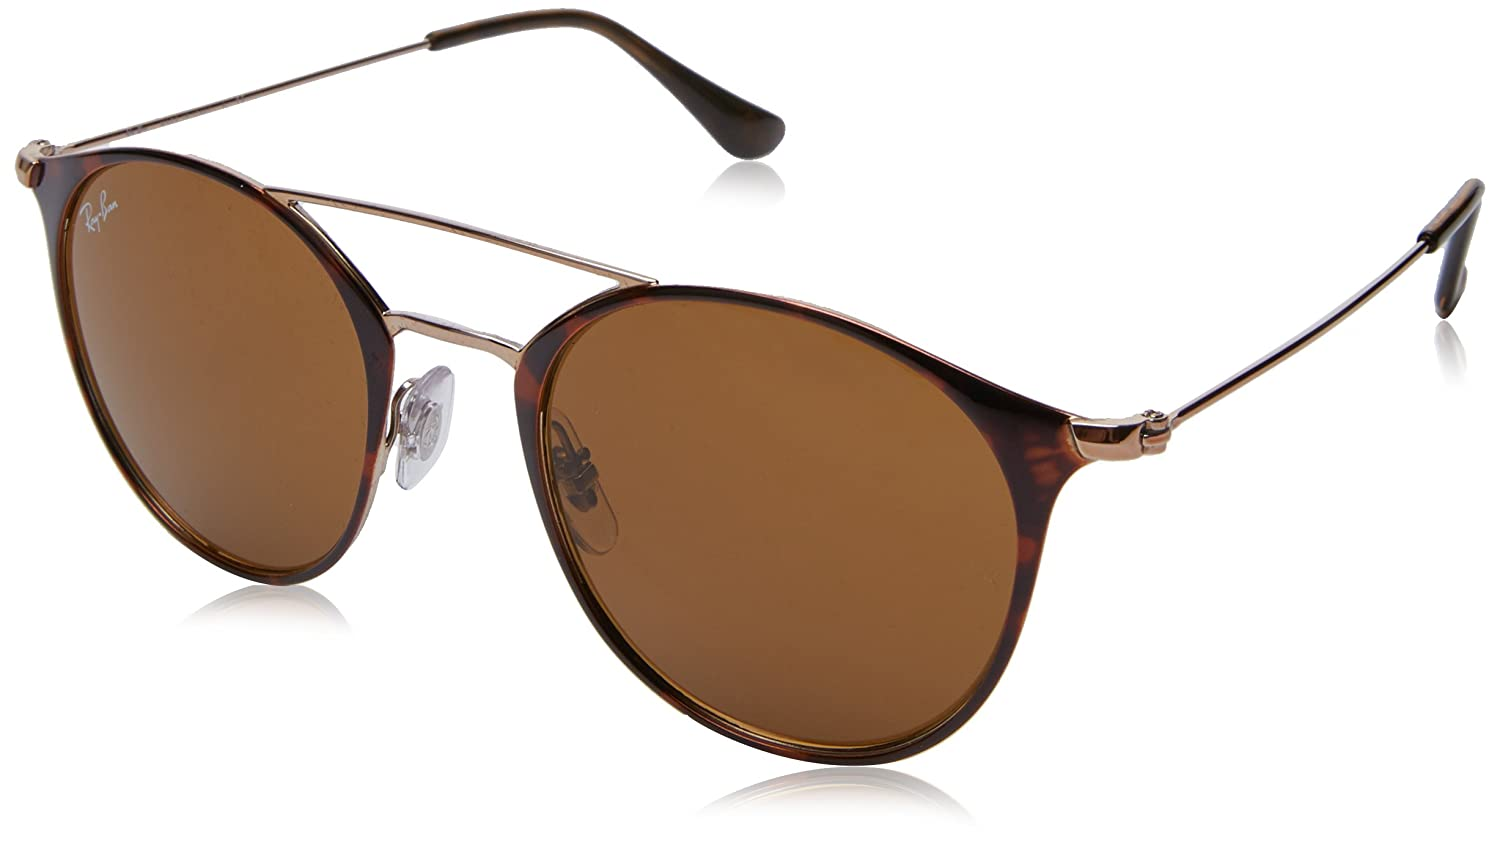 RAYBAN Unisex s 0RB3546 9074 49 Sunglasses, Copper On Top Havana Brown   Amazon.co.uk  Clothing 23f4e0b108